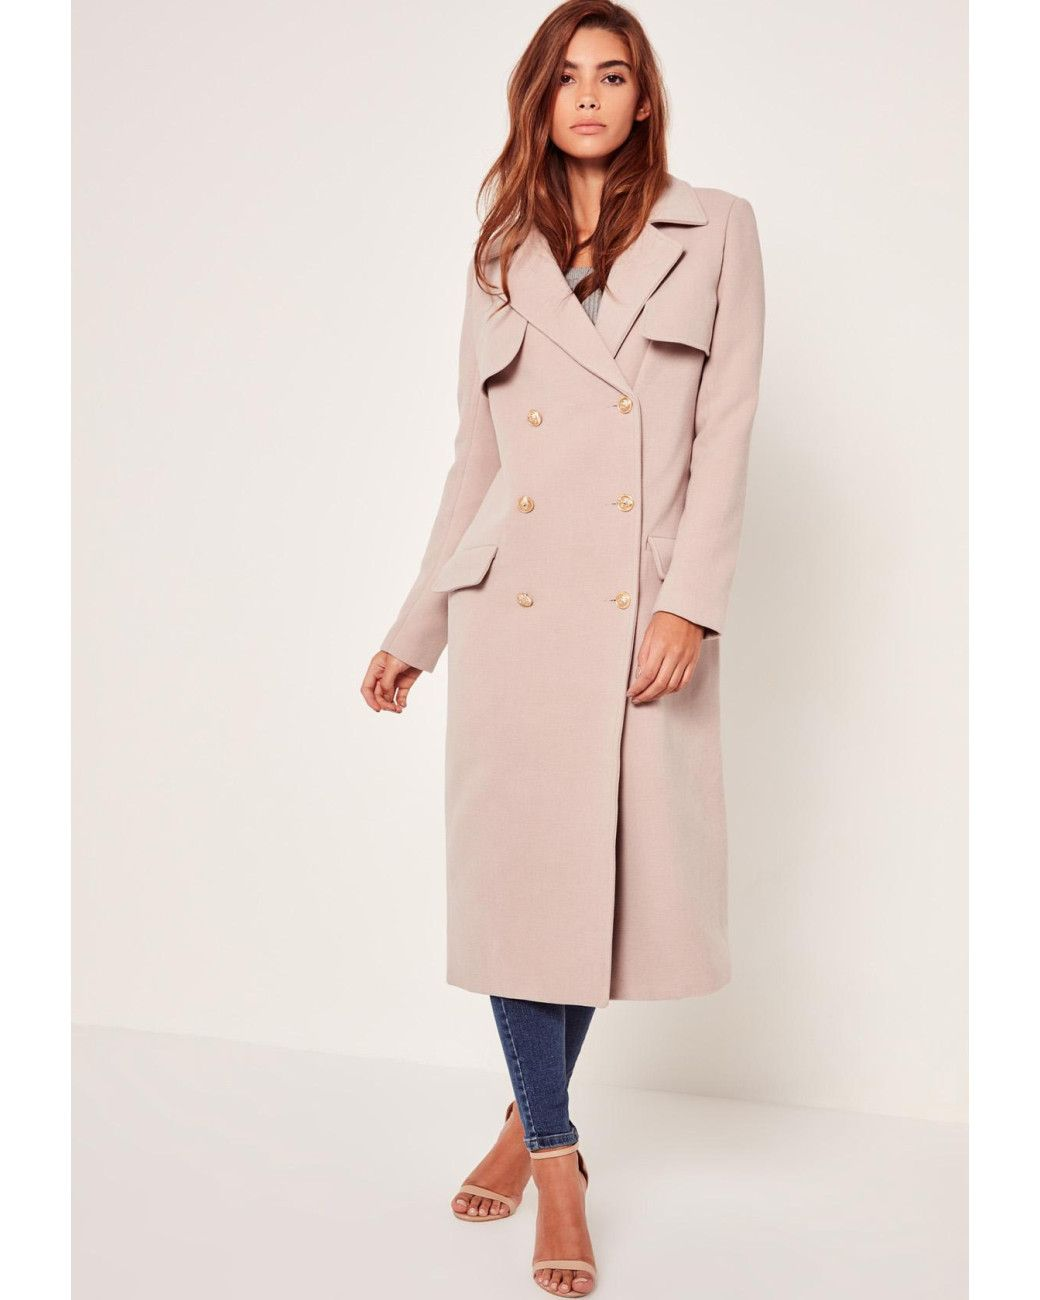 af5b5e0afce8 Women s Pink Longline Faux Wool Military Coat Nude